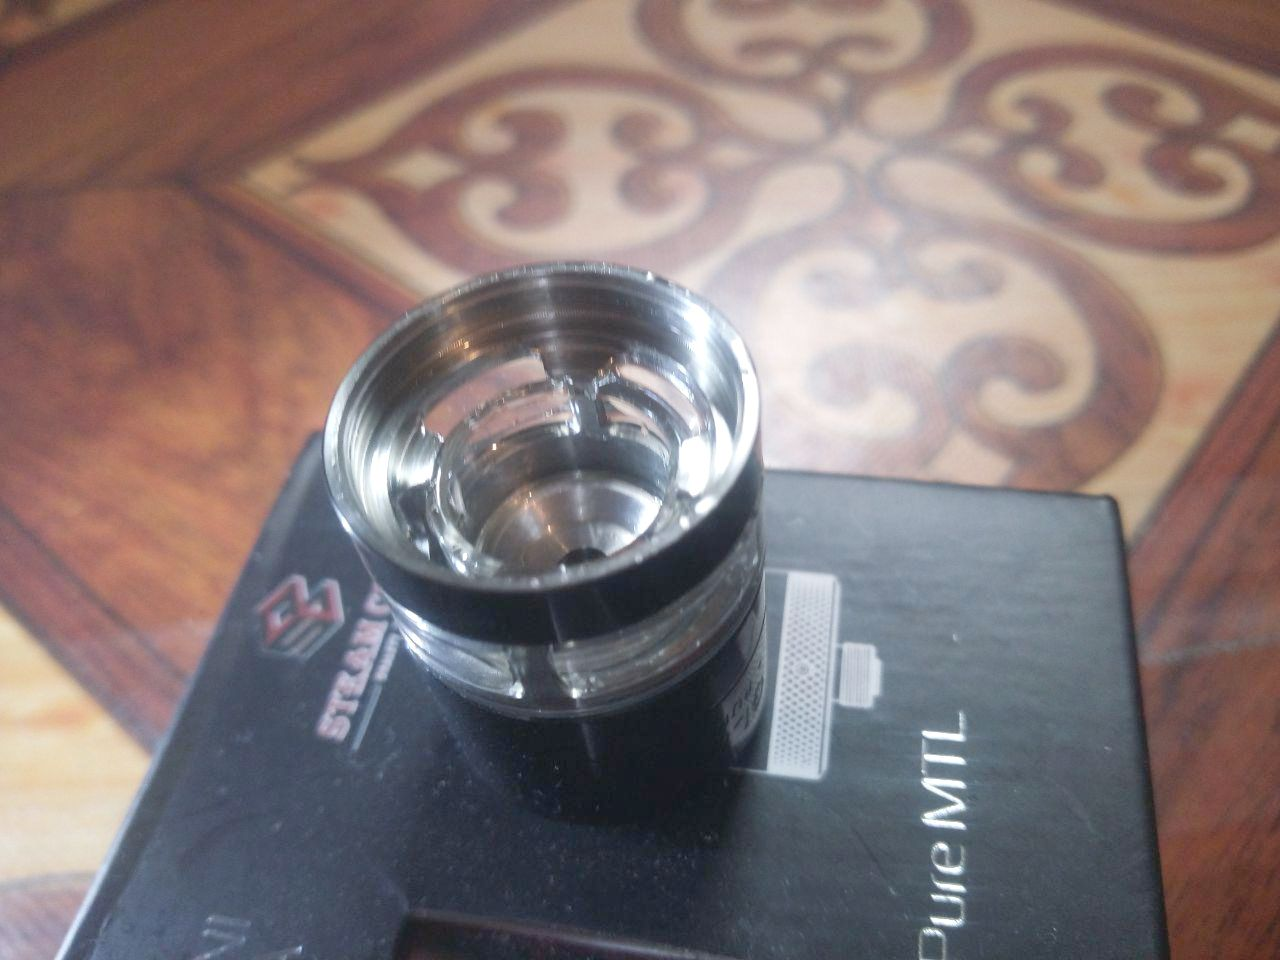 Steam Crave Glaz Mini MTL is one of the true MTL RTAs from Steam Crave that is best known for its big beasts. Did he succeed?